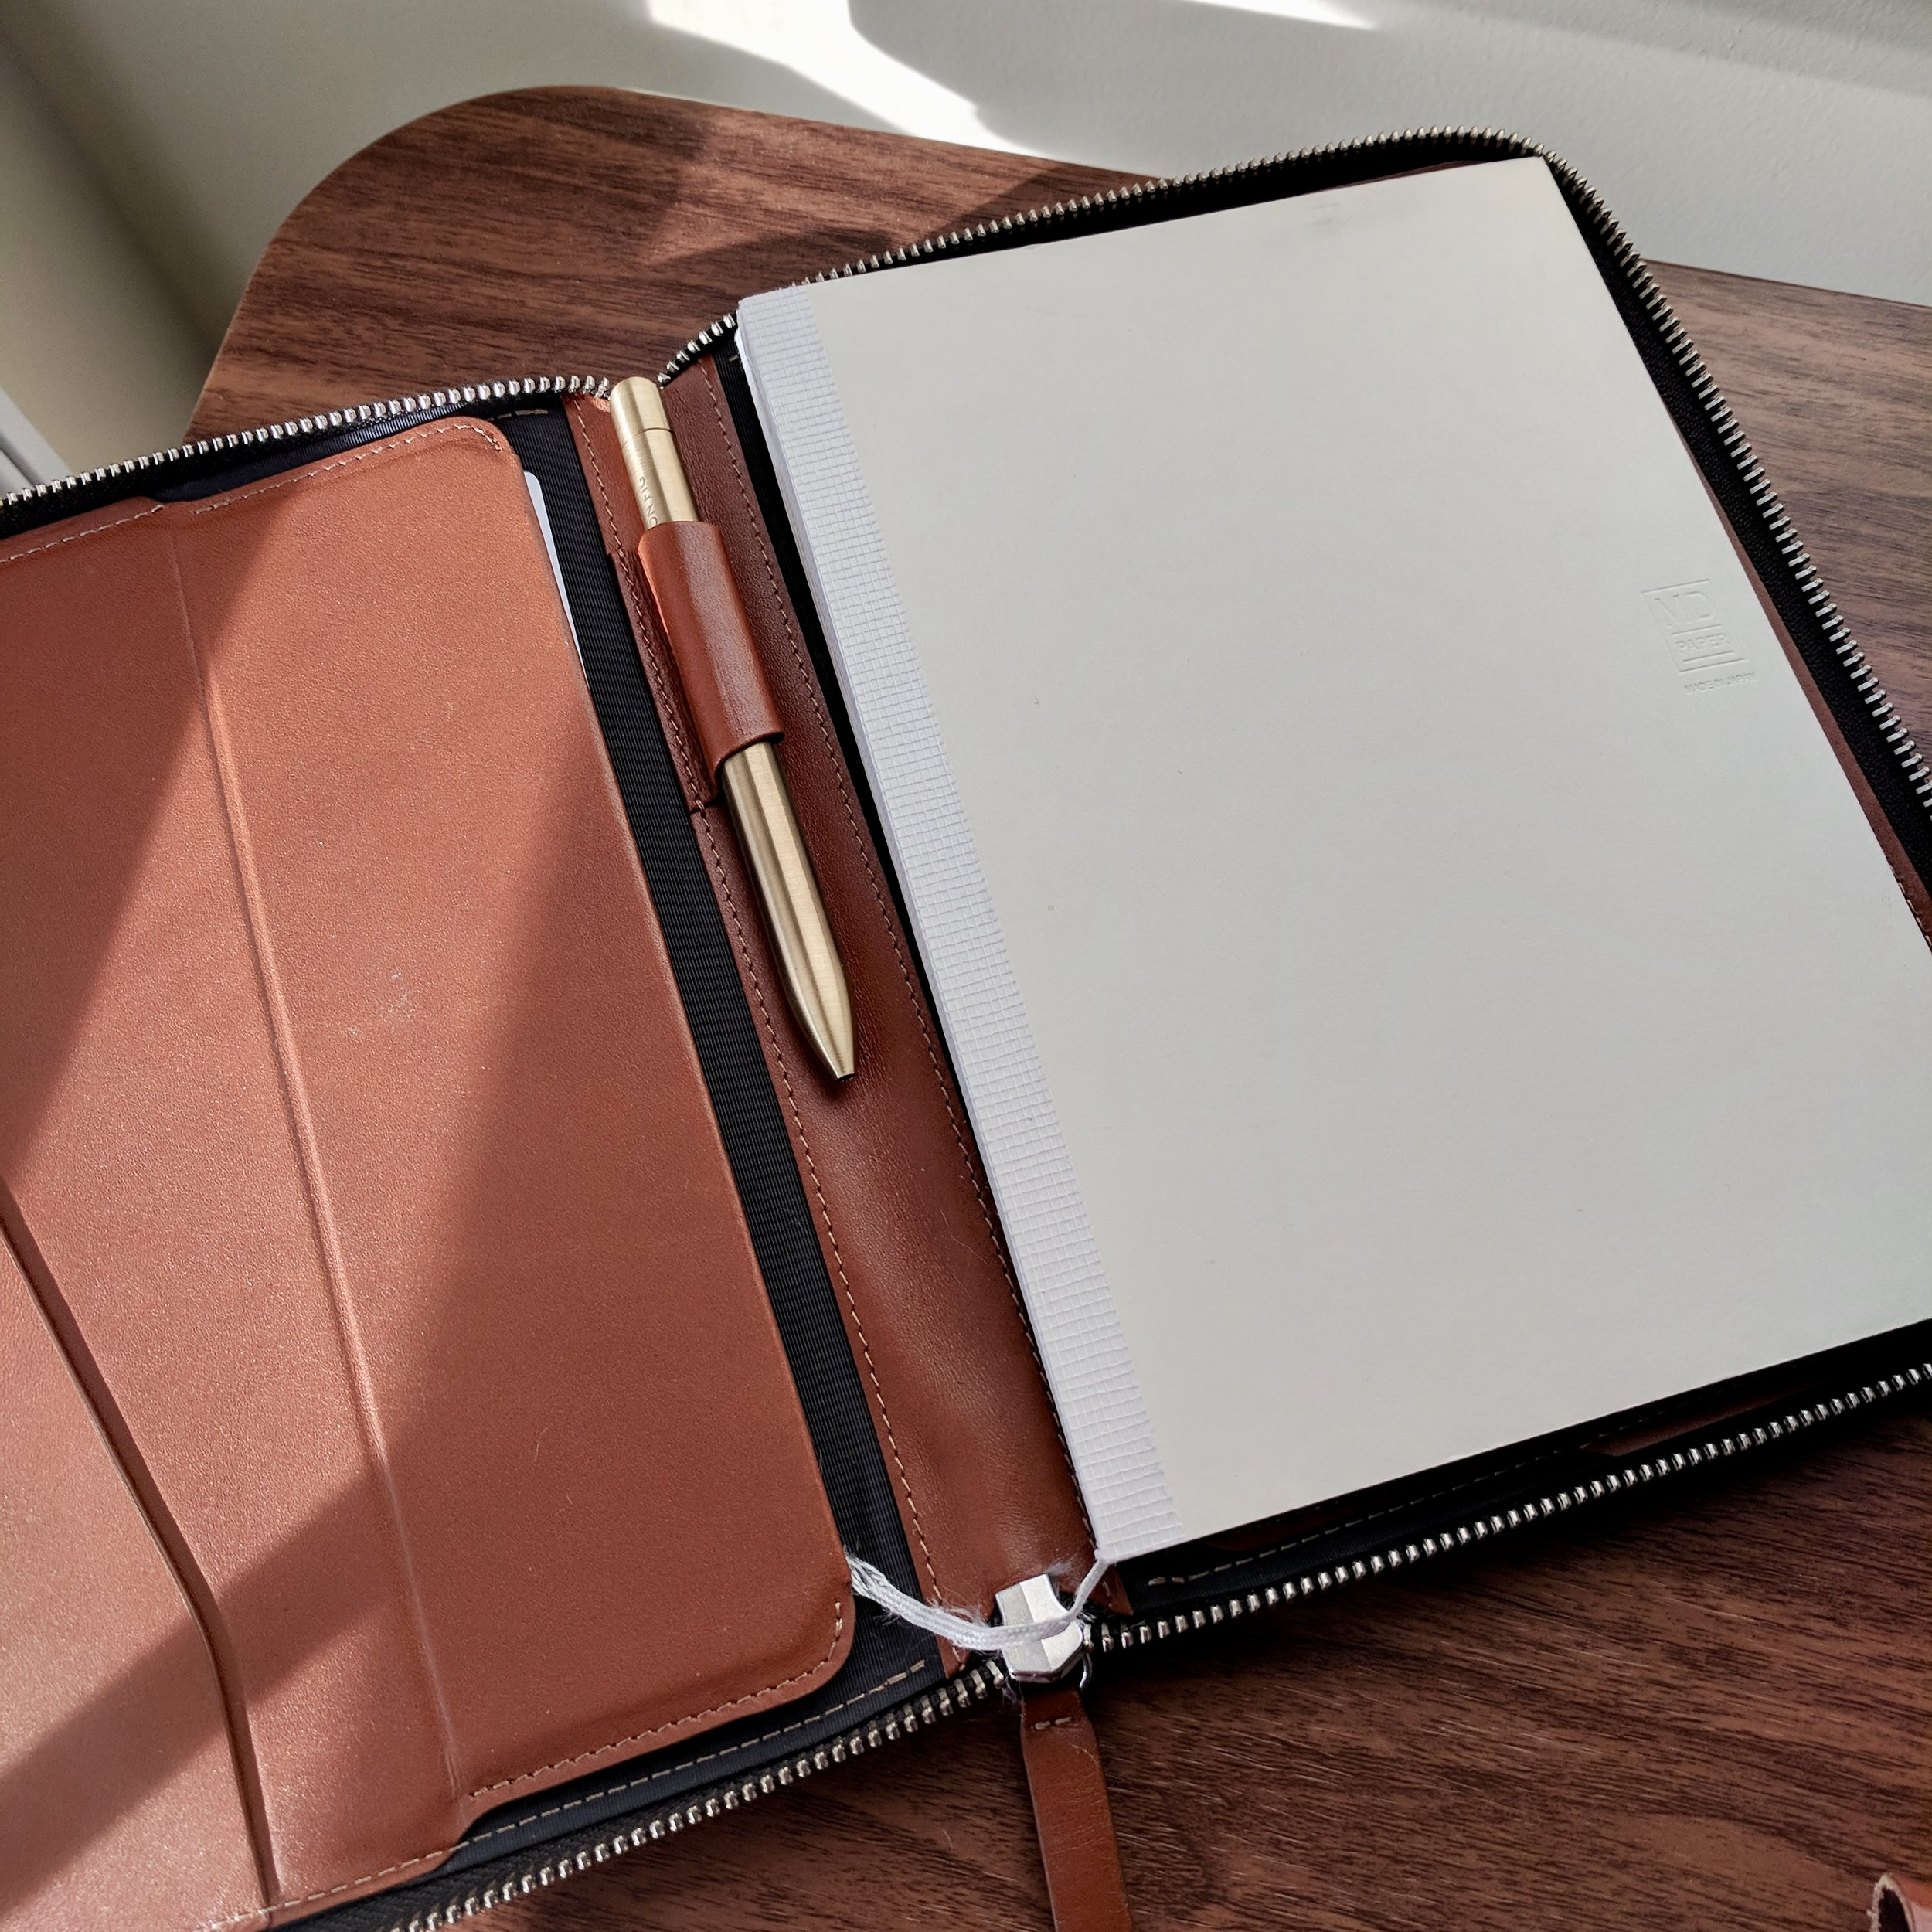 Bellroy Work Folio A5 with Midori MD